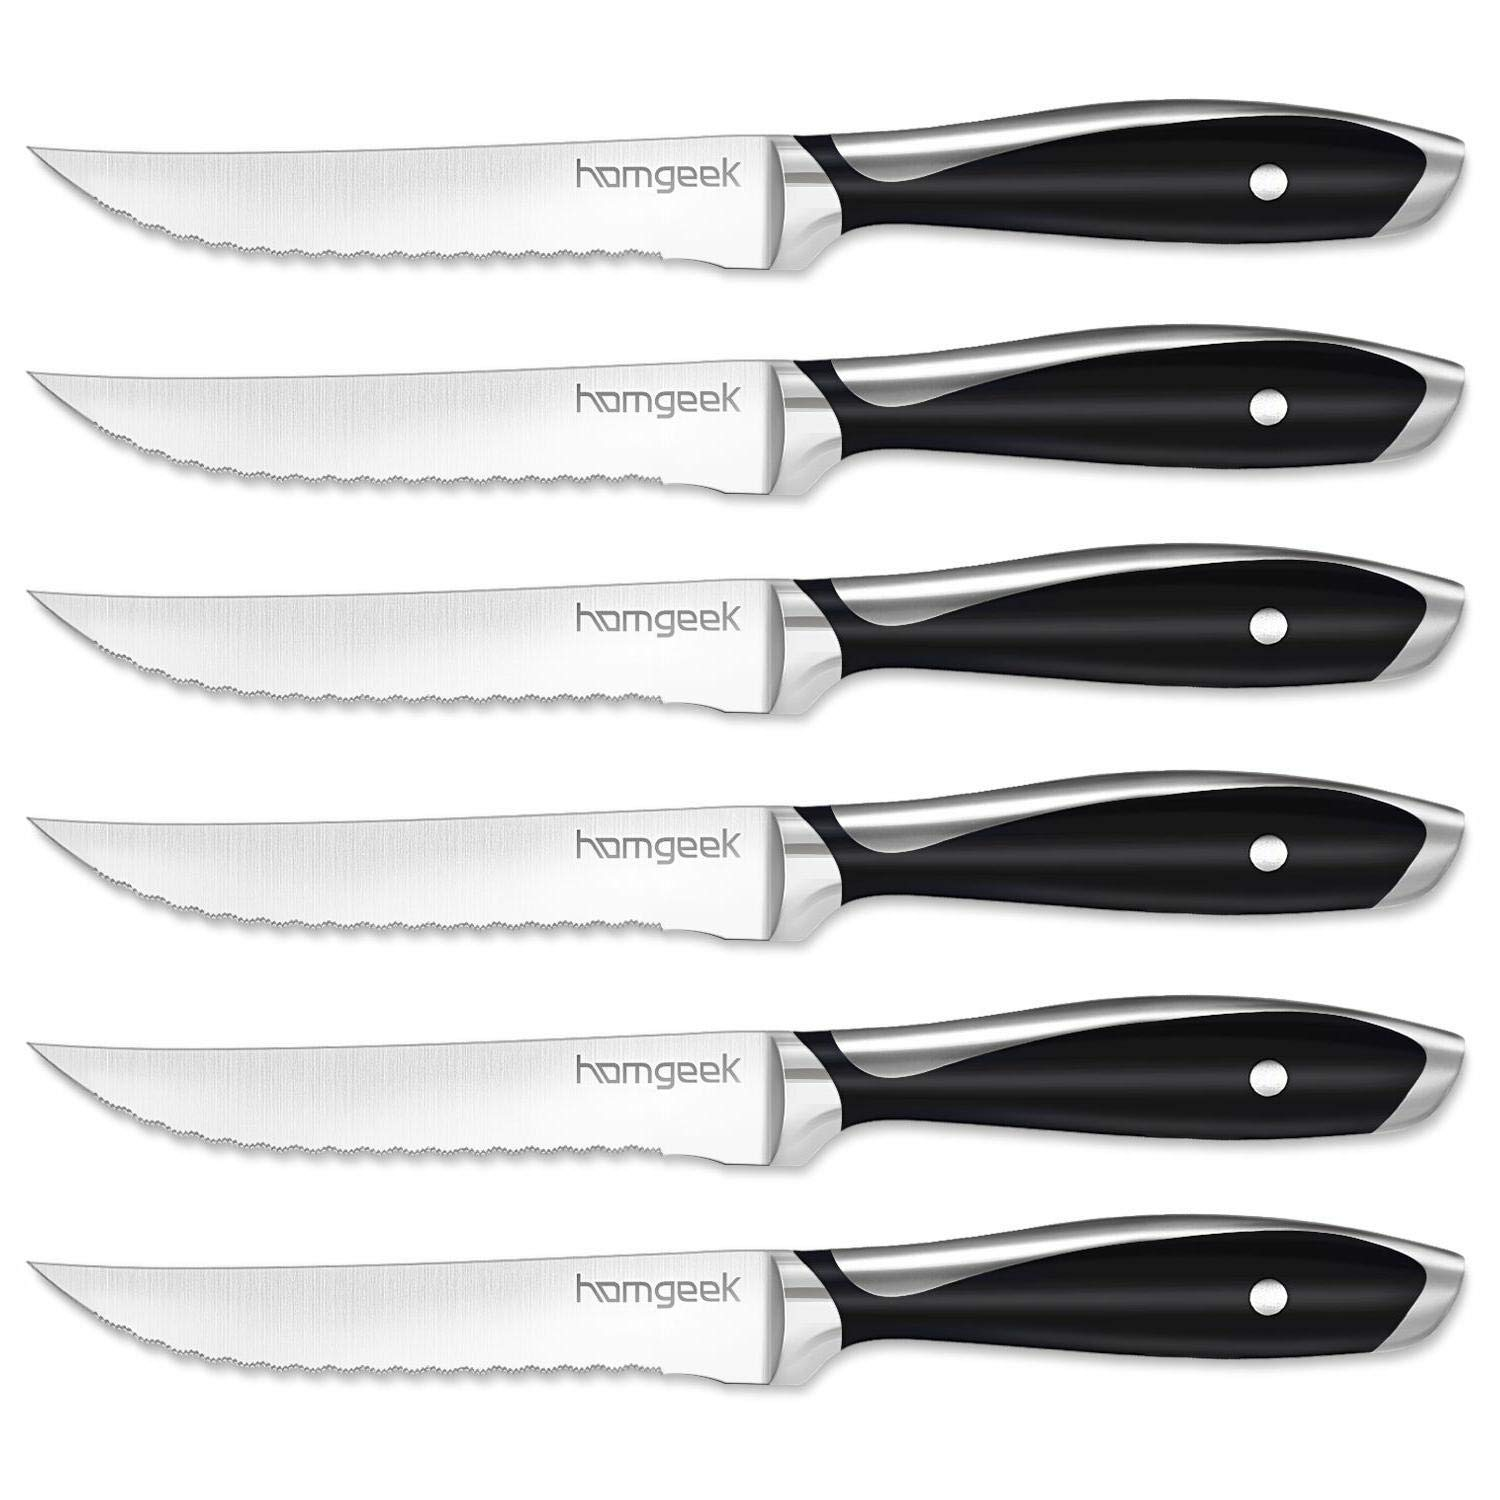 homgeek Steakmesser Set, 6-teilig